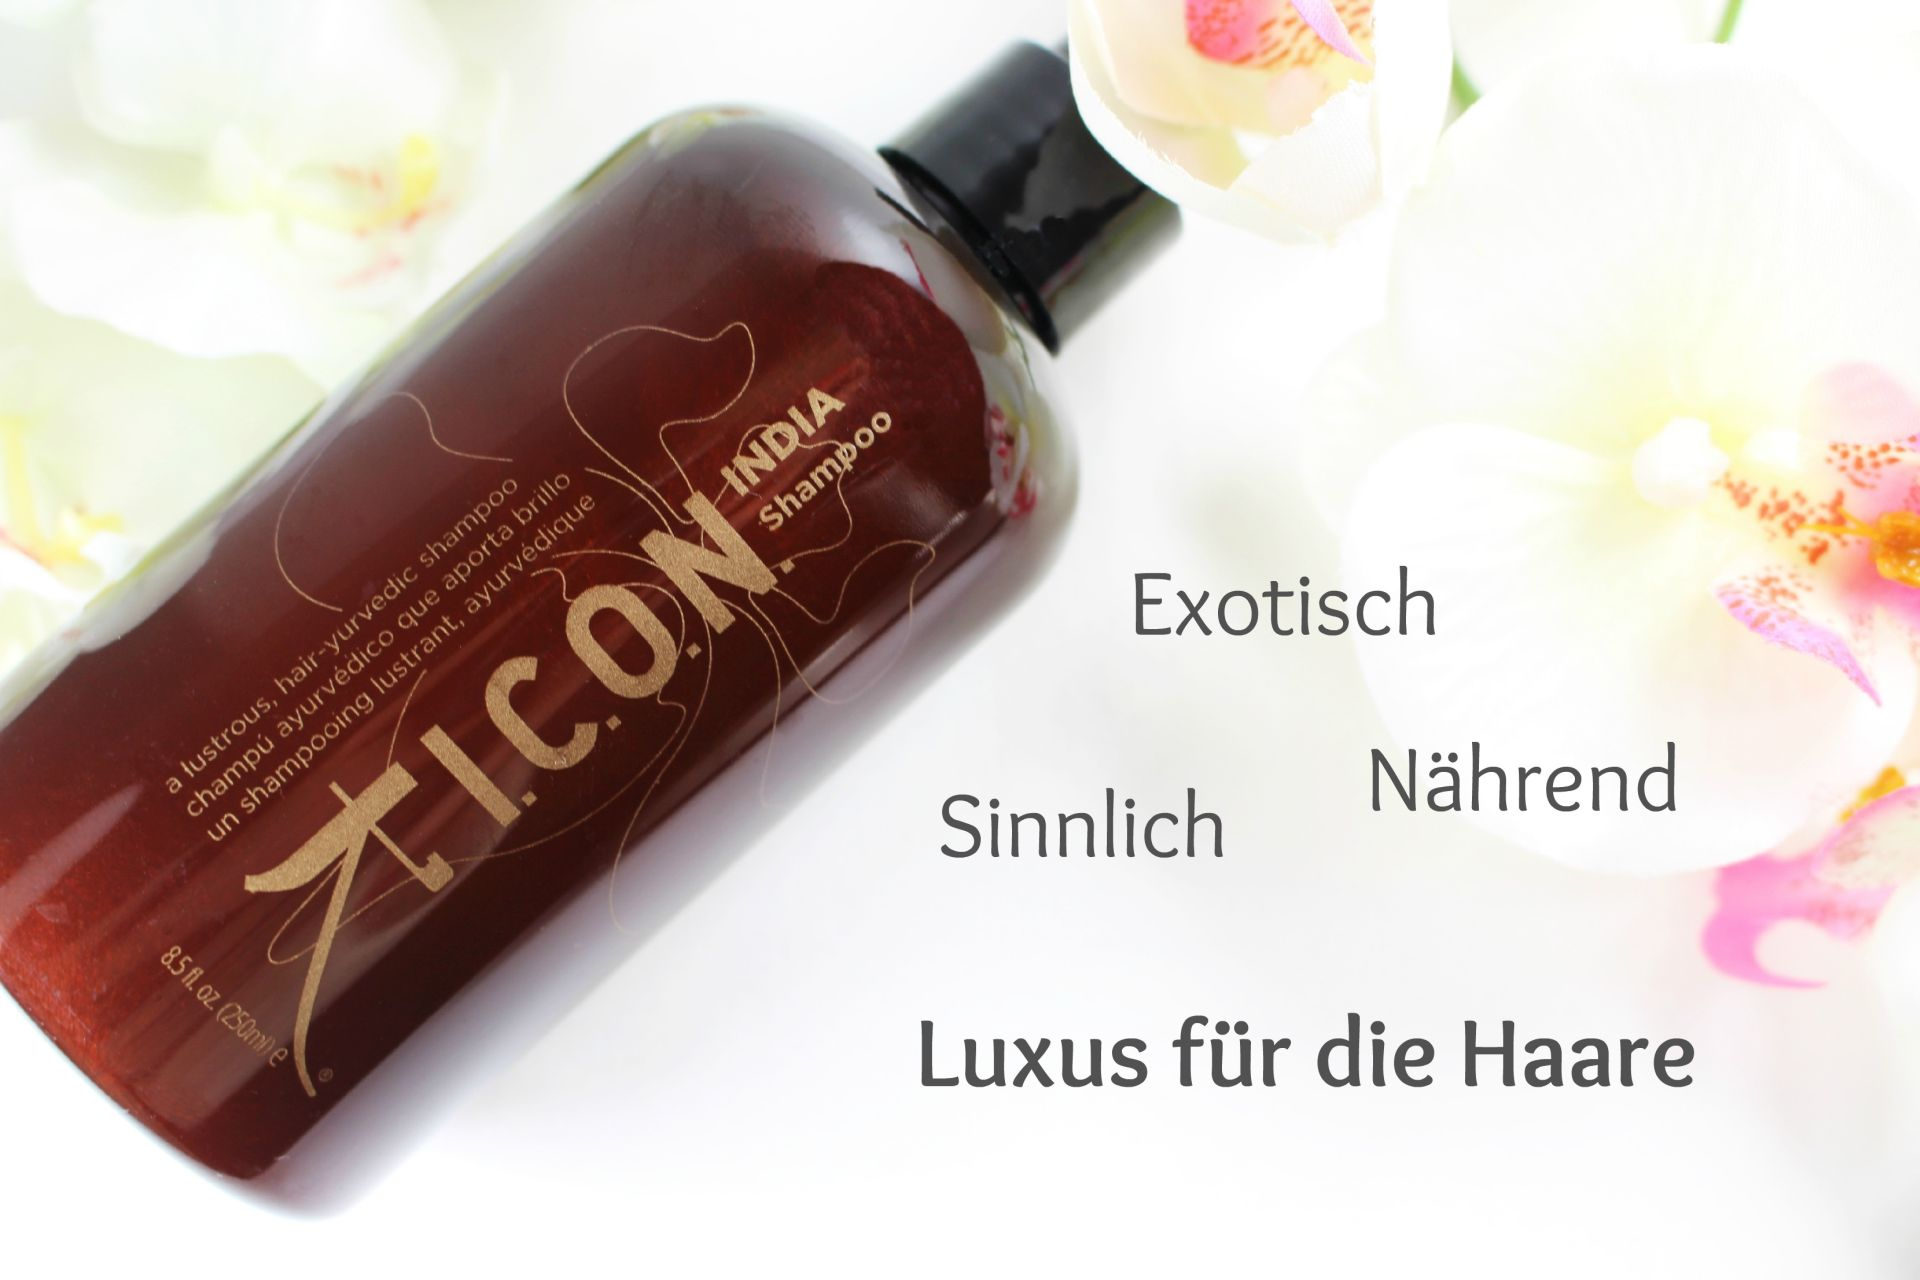 ICON India Shampoo Review, ICON India Oil, ICON India Shampoo Ingredients, ICON India Shampoo Inhaltsstoffe, Haarpflege Silikone, Super Twins Annalena und Magdalena